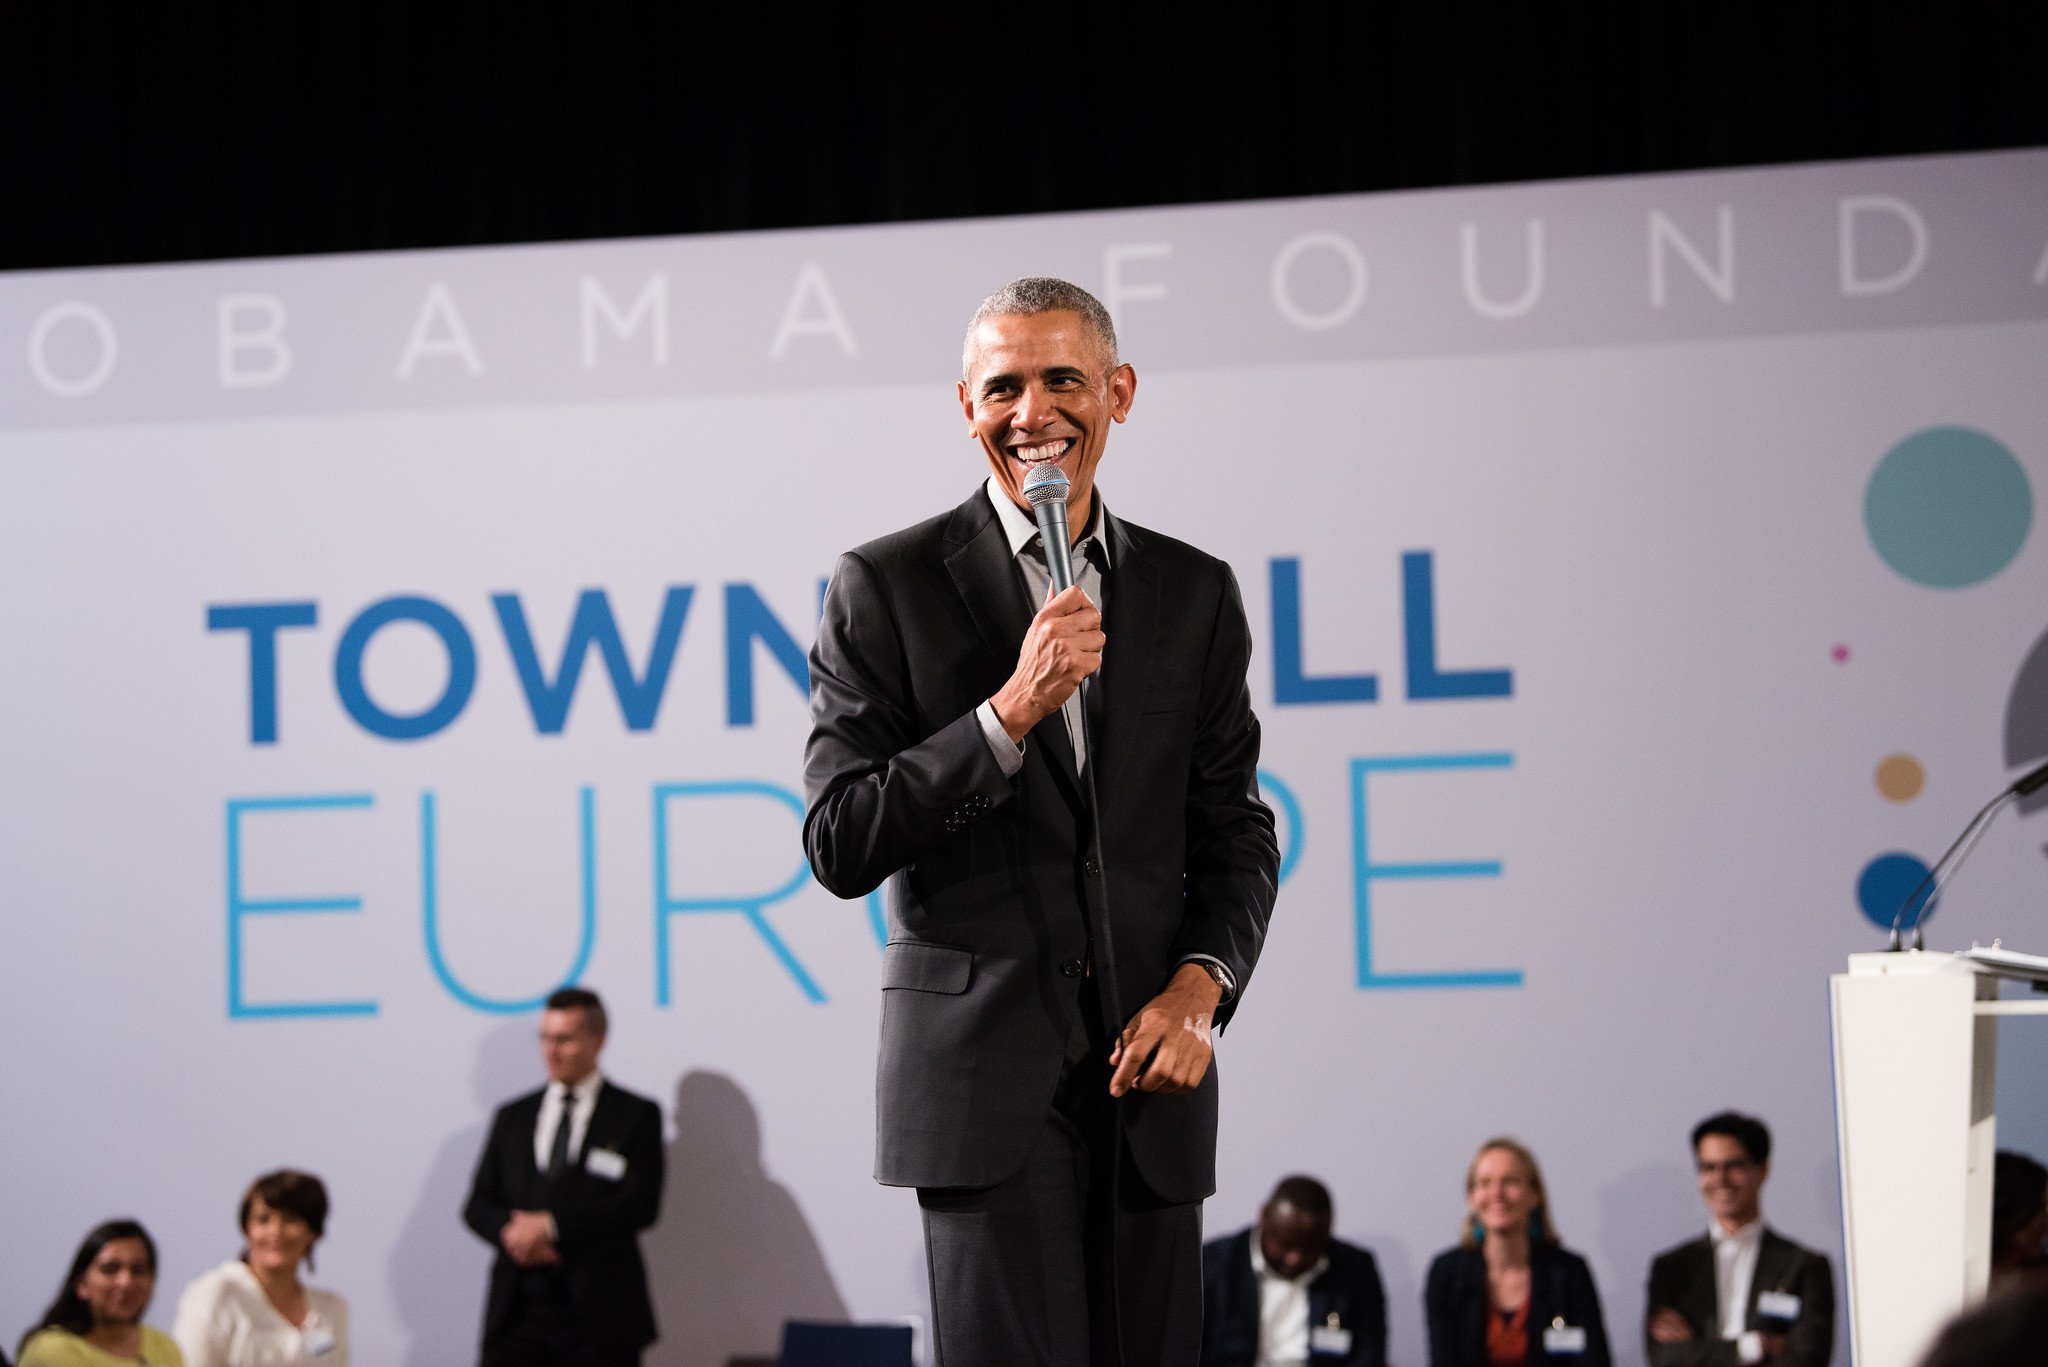 President Barack Obama speaking at ESMT Berlin for the Obama Foundation Town Hall Europe.